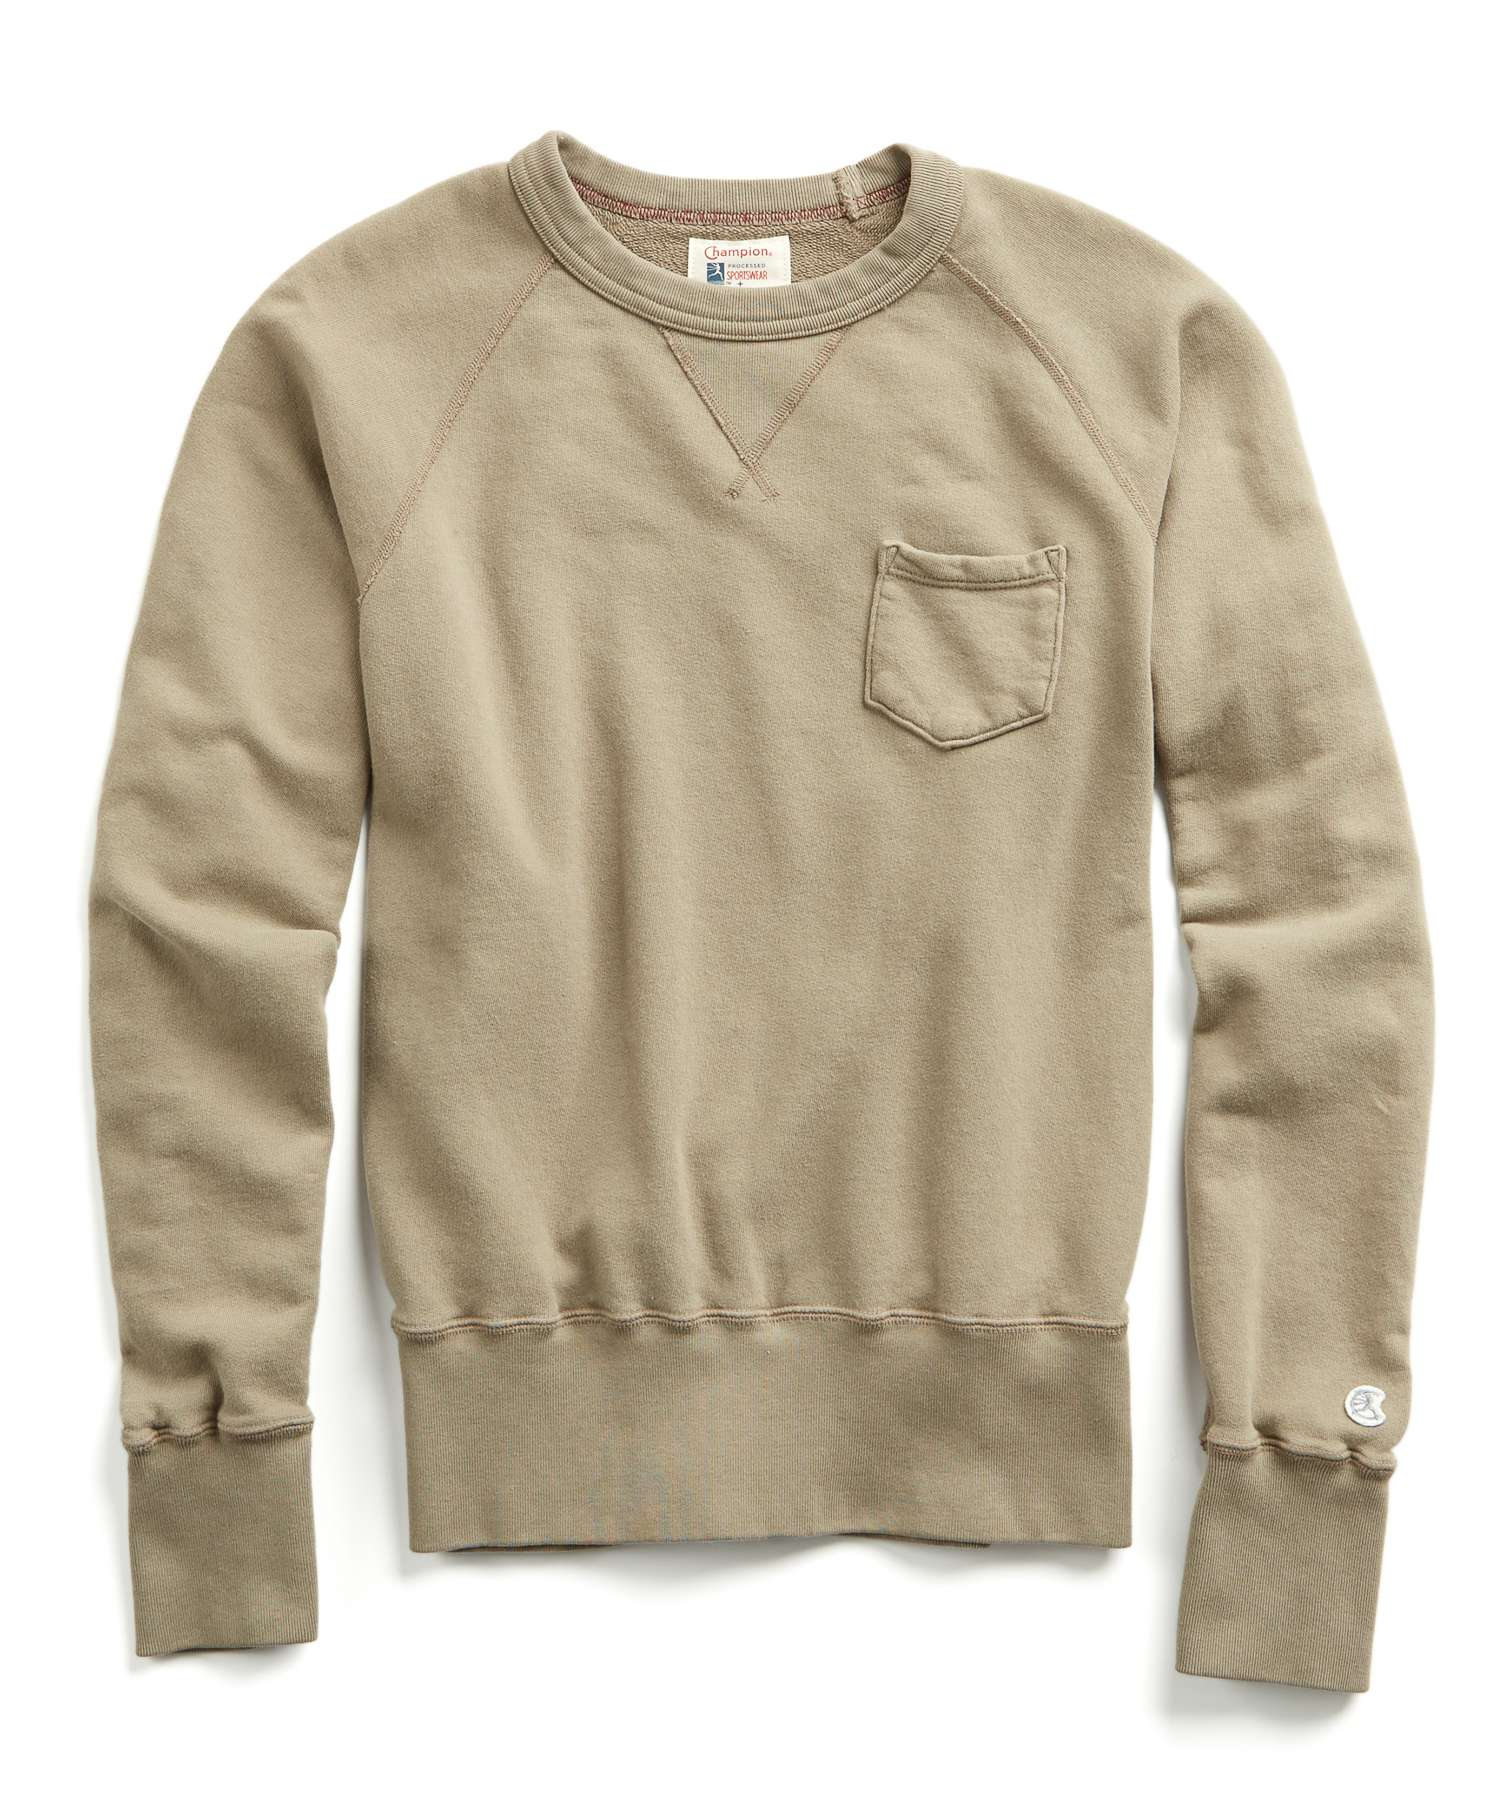 Terry Pocket Sweatshirt in Dark Driftwood